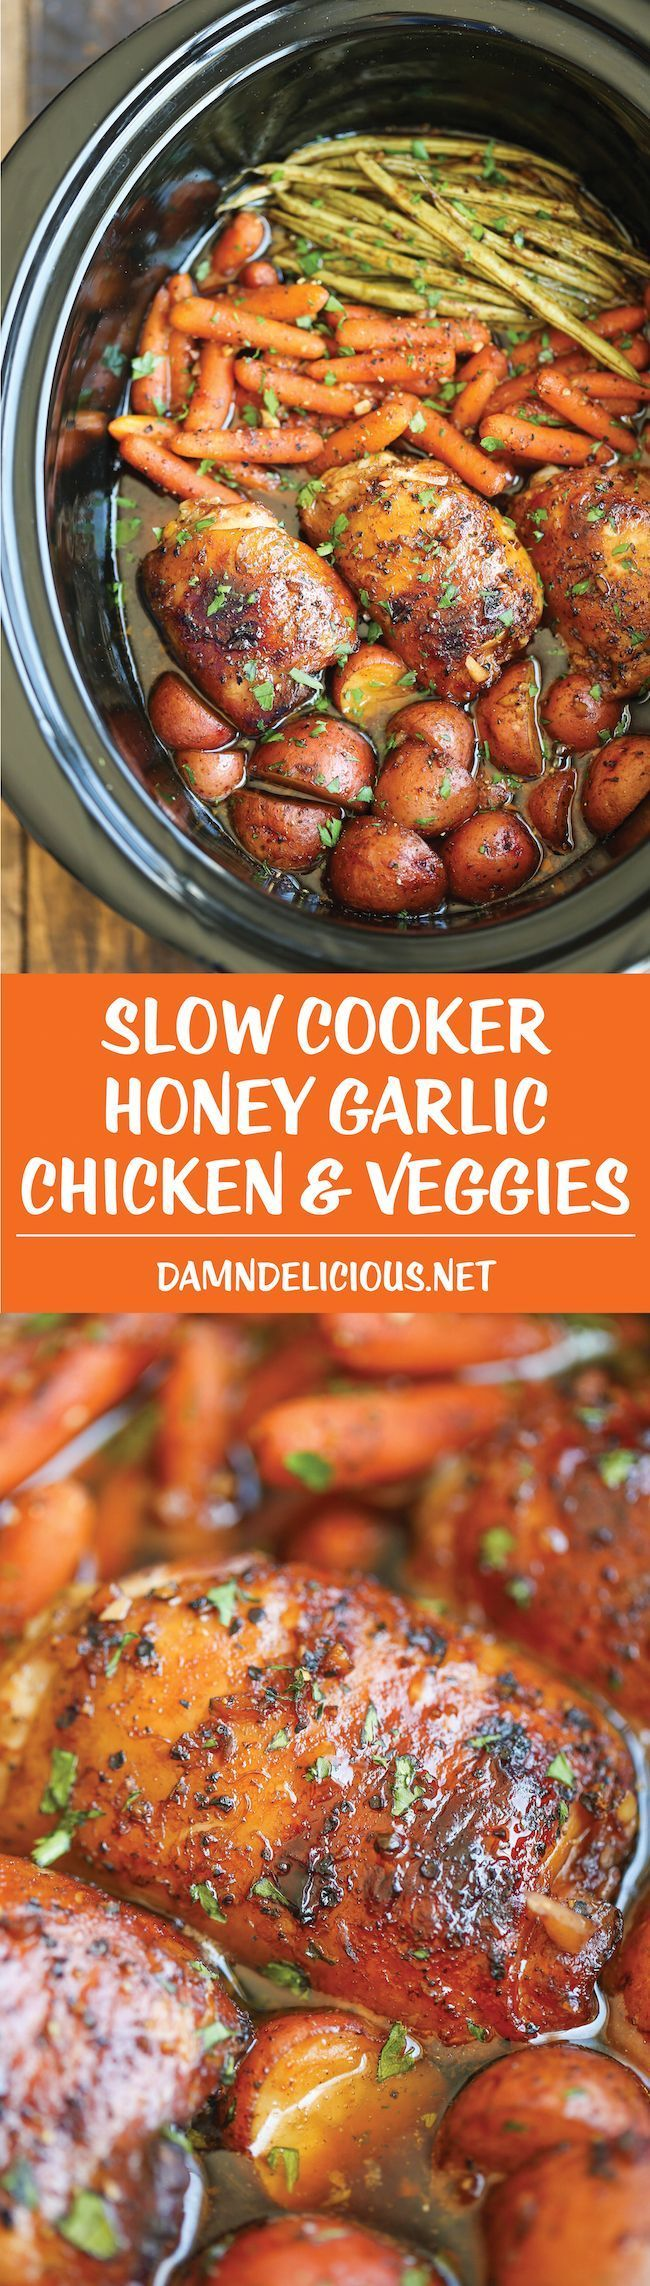 Chicken thigh crock pot recipes garlic